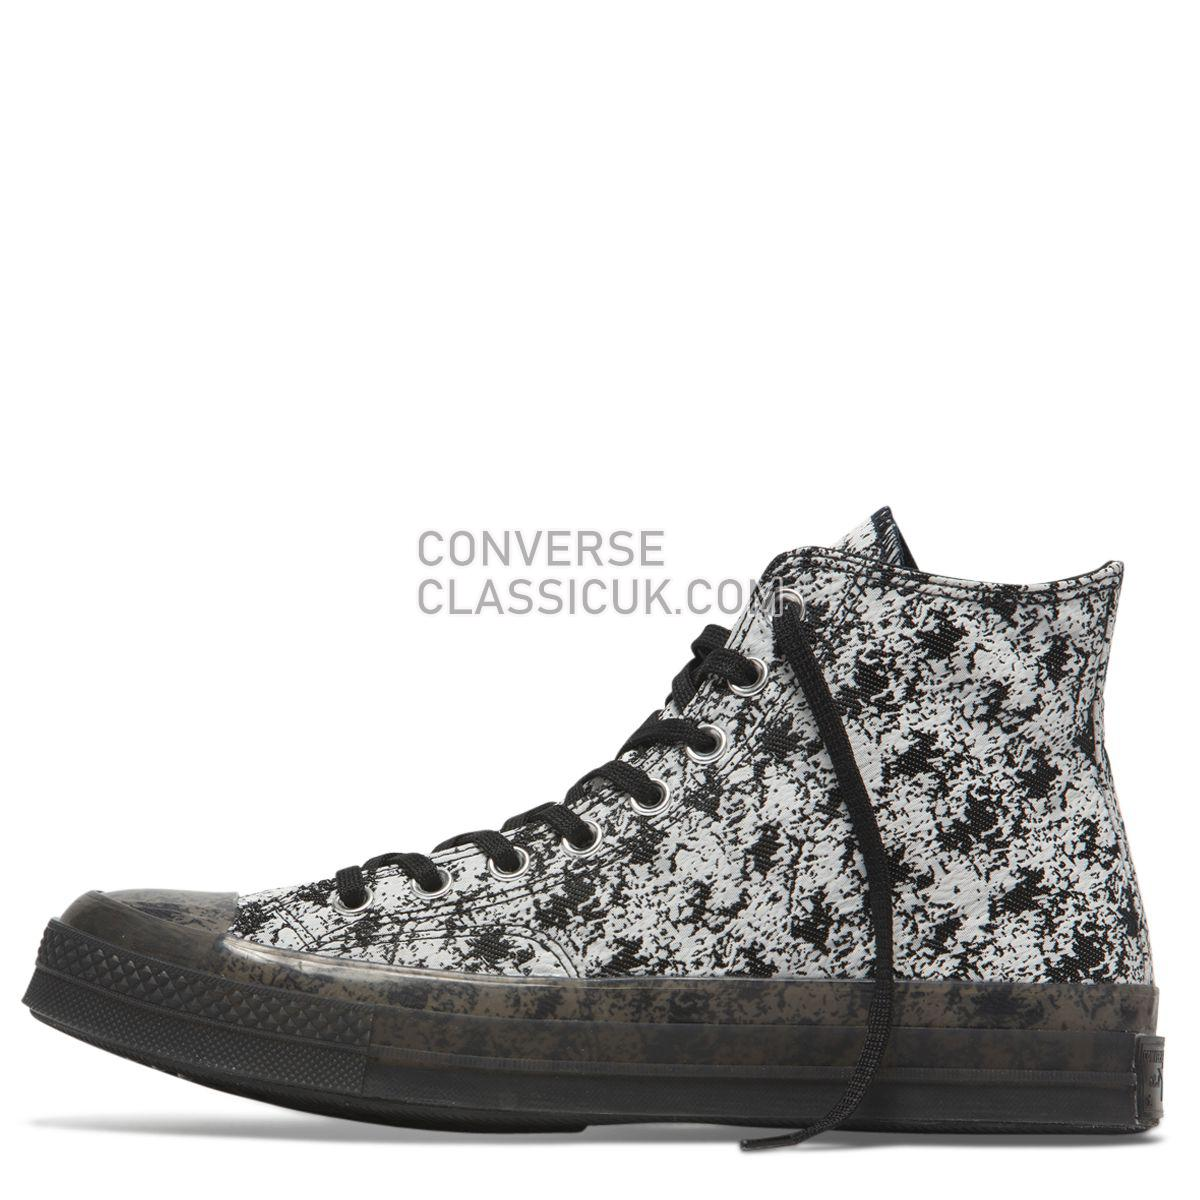 Converse Chuck Taylor All Star 70 Translucent Midsole High Top Black Mens 163325 Black/White/Clear Shoes